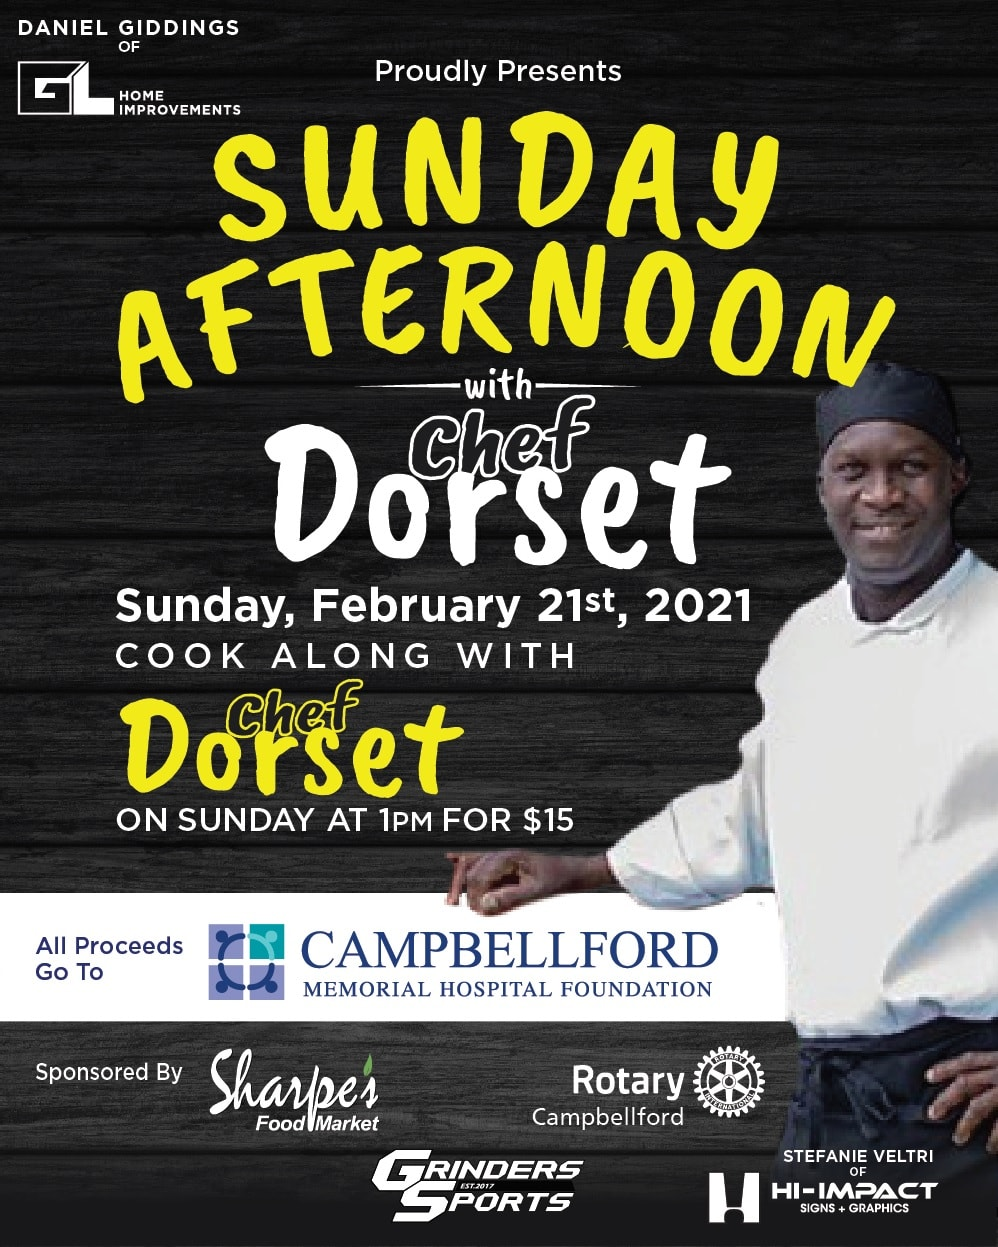 Cooking With Dorset Front of Poster